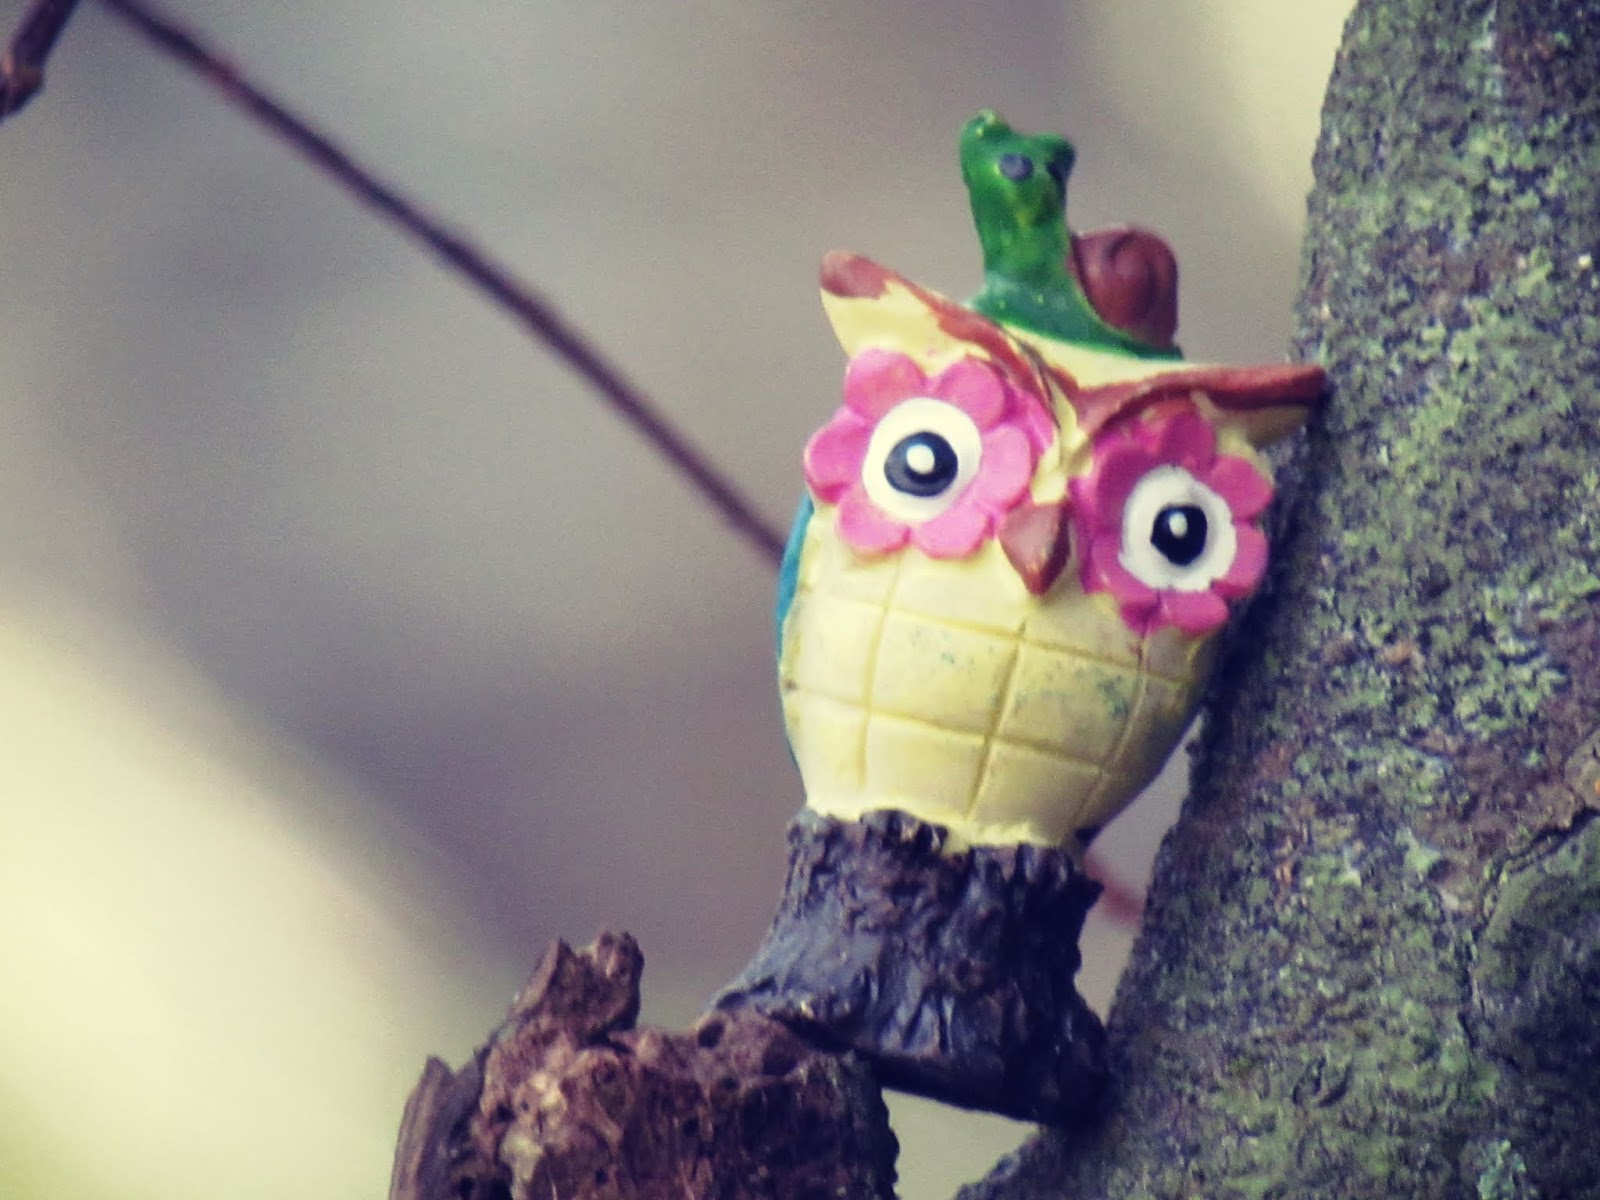 A tiny owl toy figurine up in a bare tree in winter in the magic of the forest